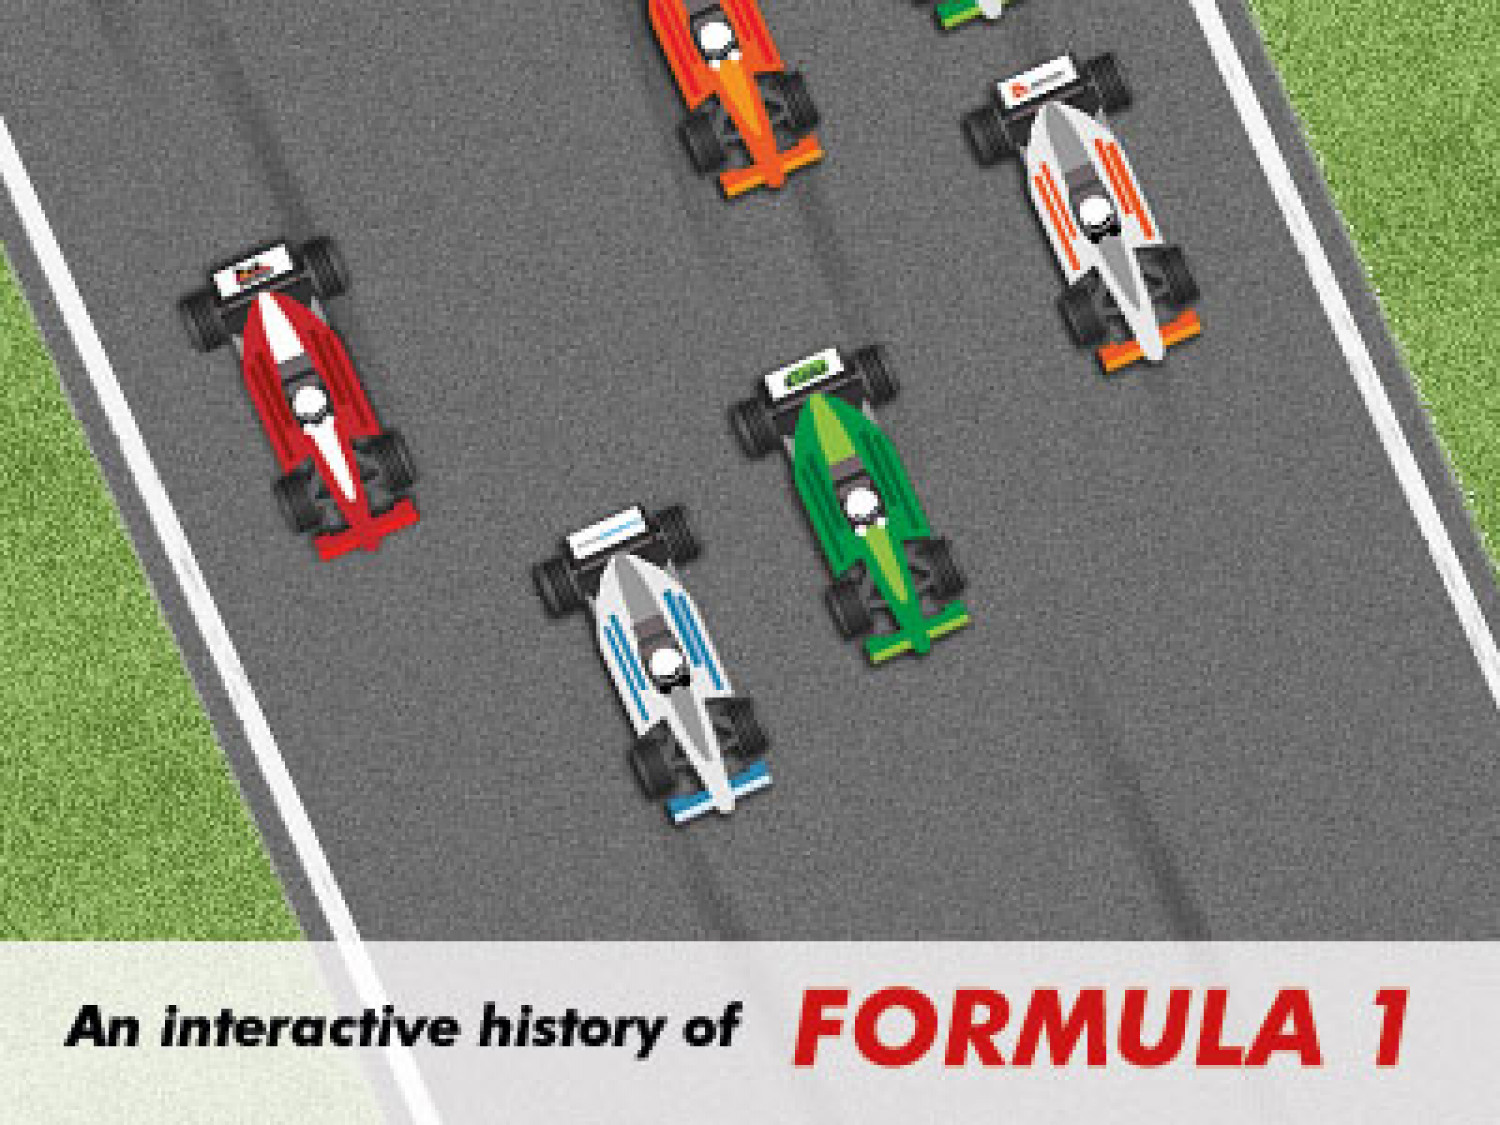 The Interactive History of Formula 1 Infographic